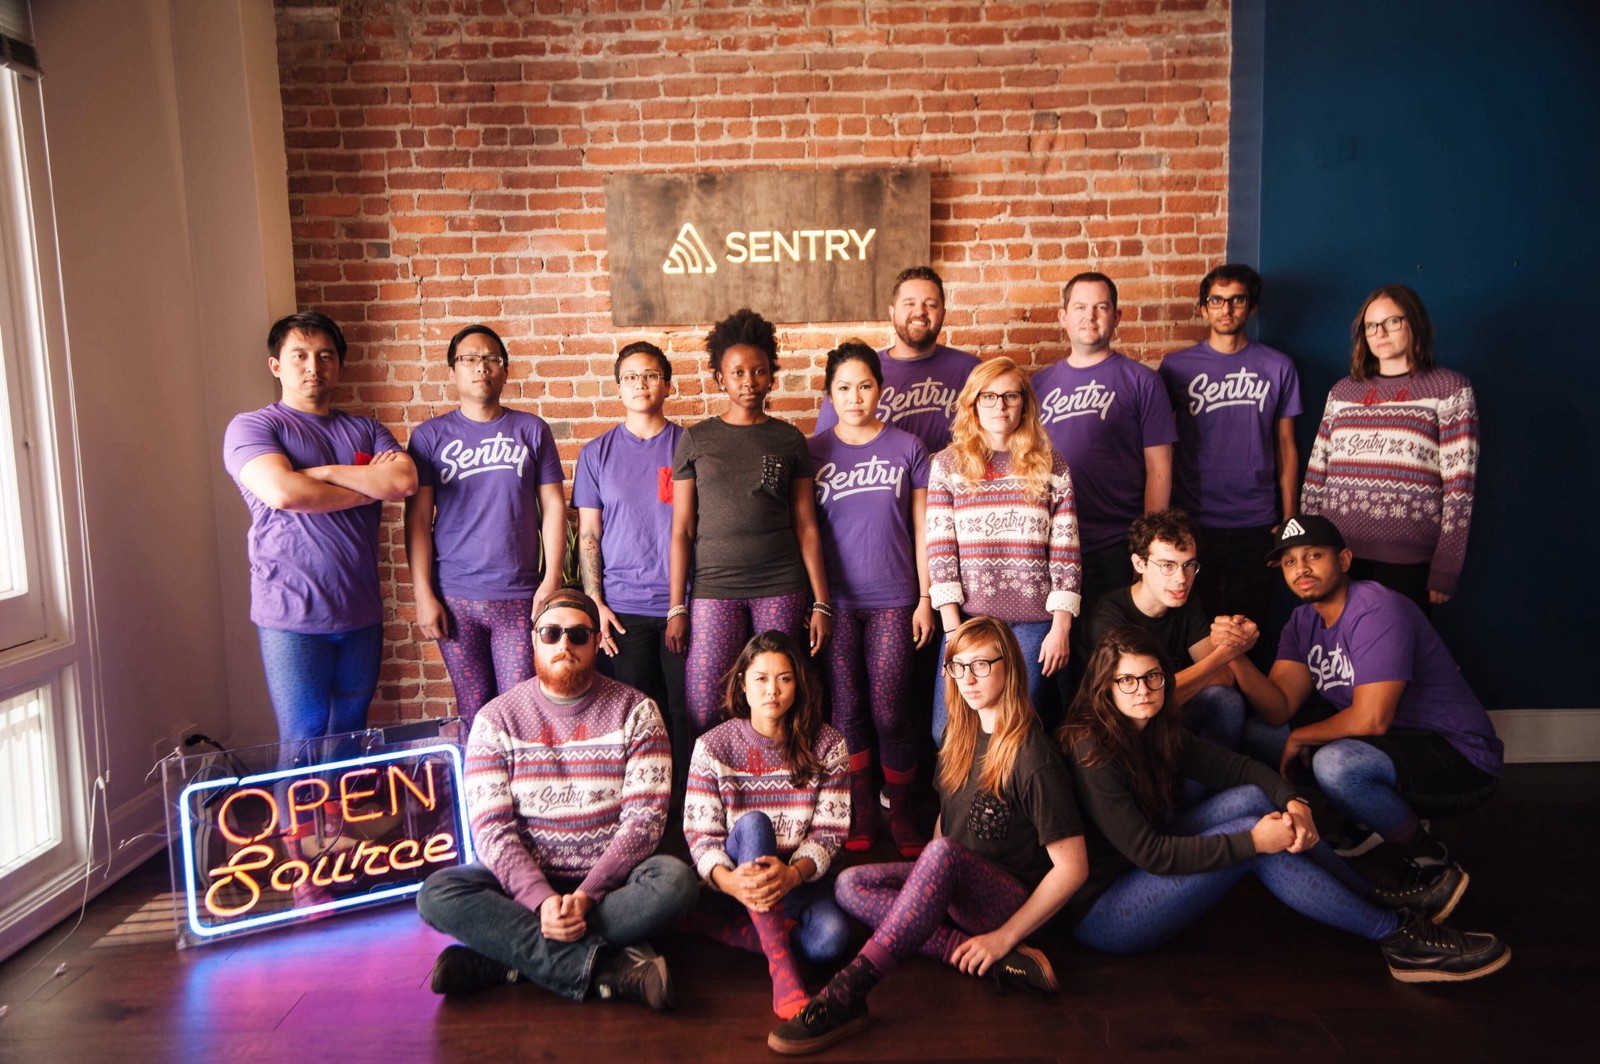 Sentry team photo